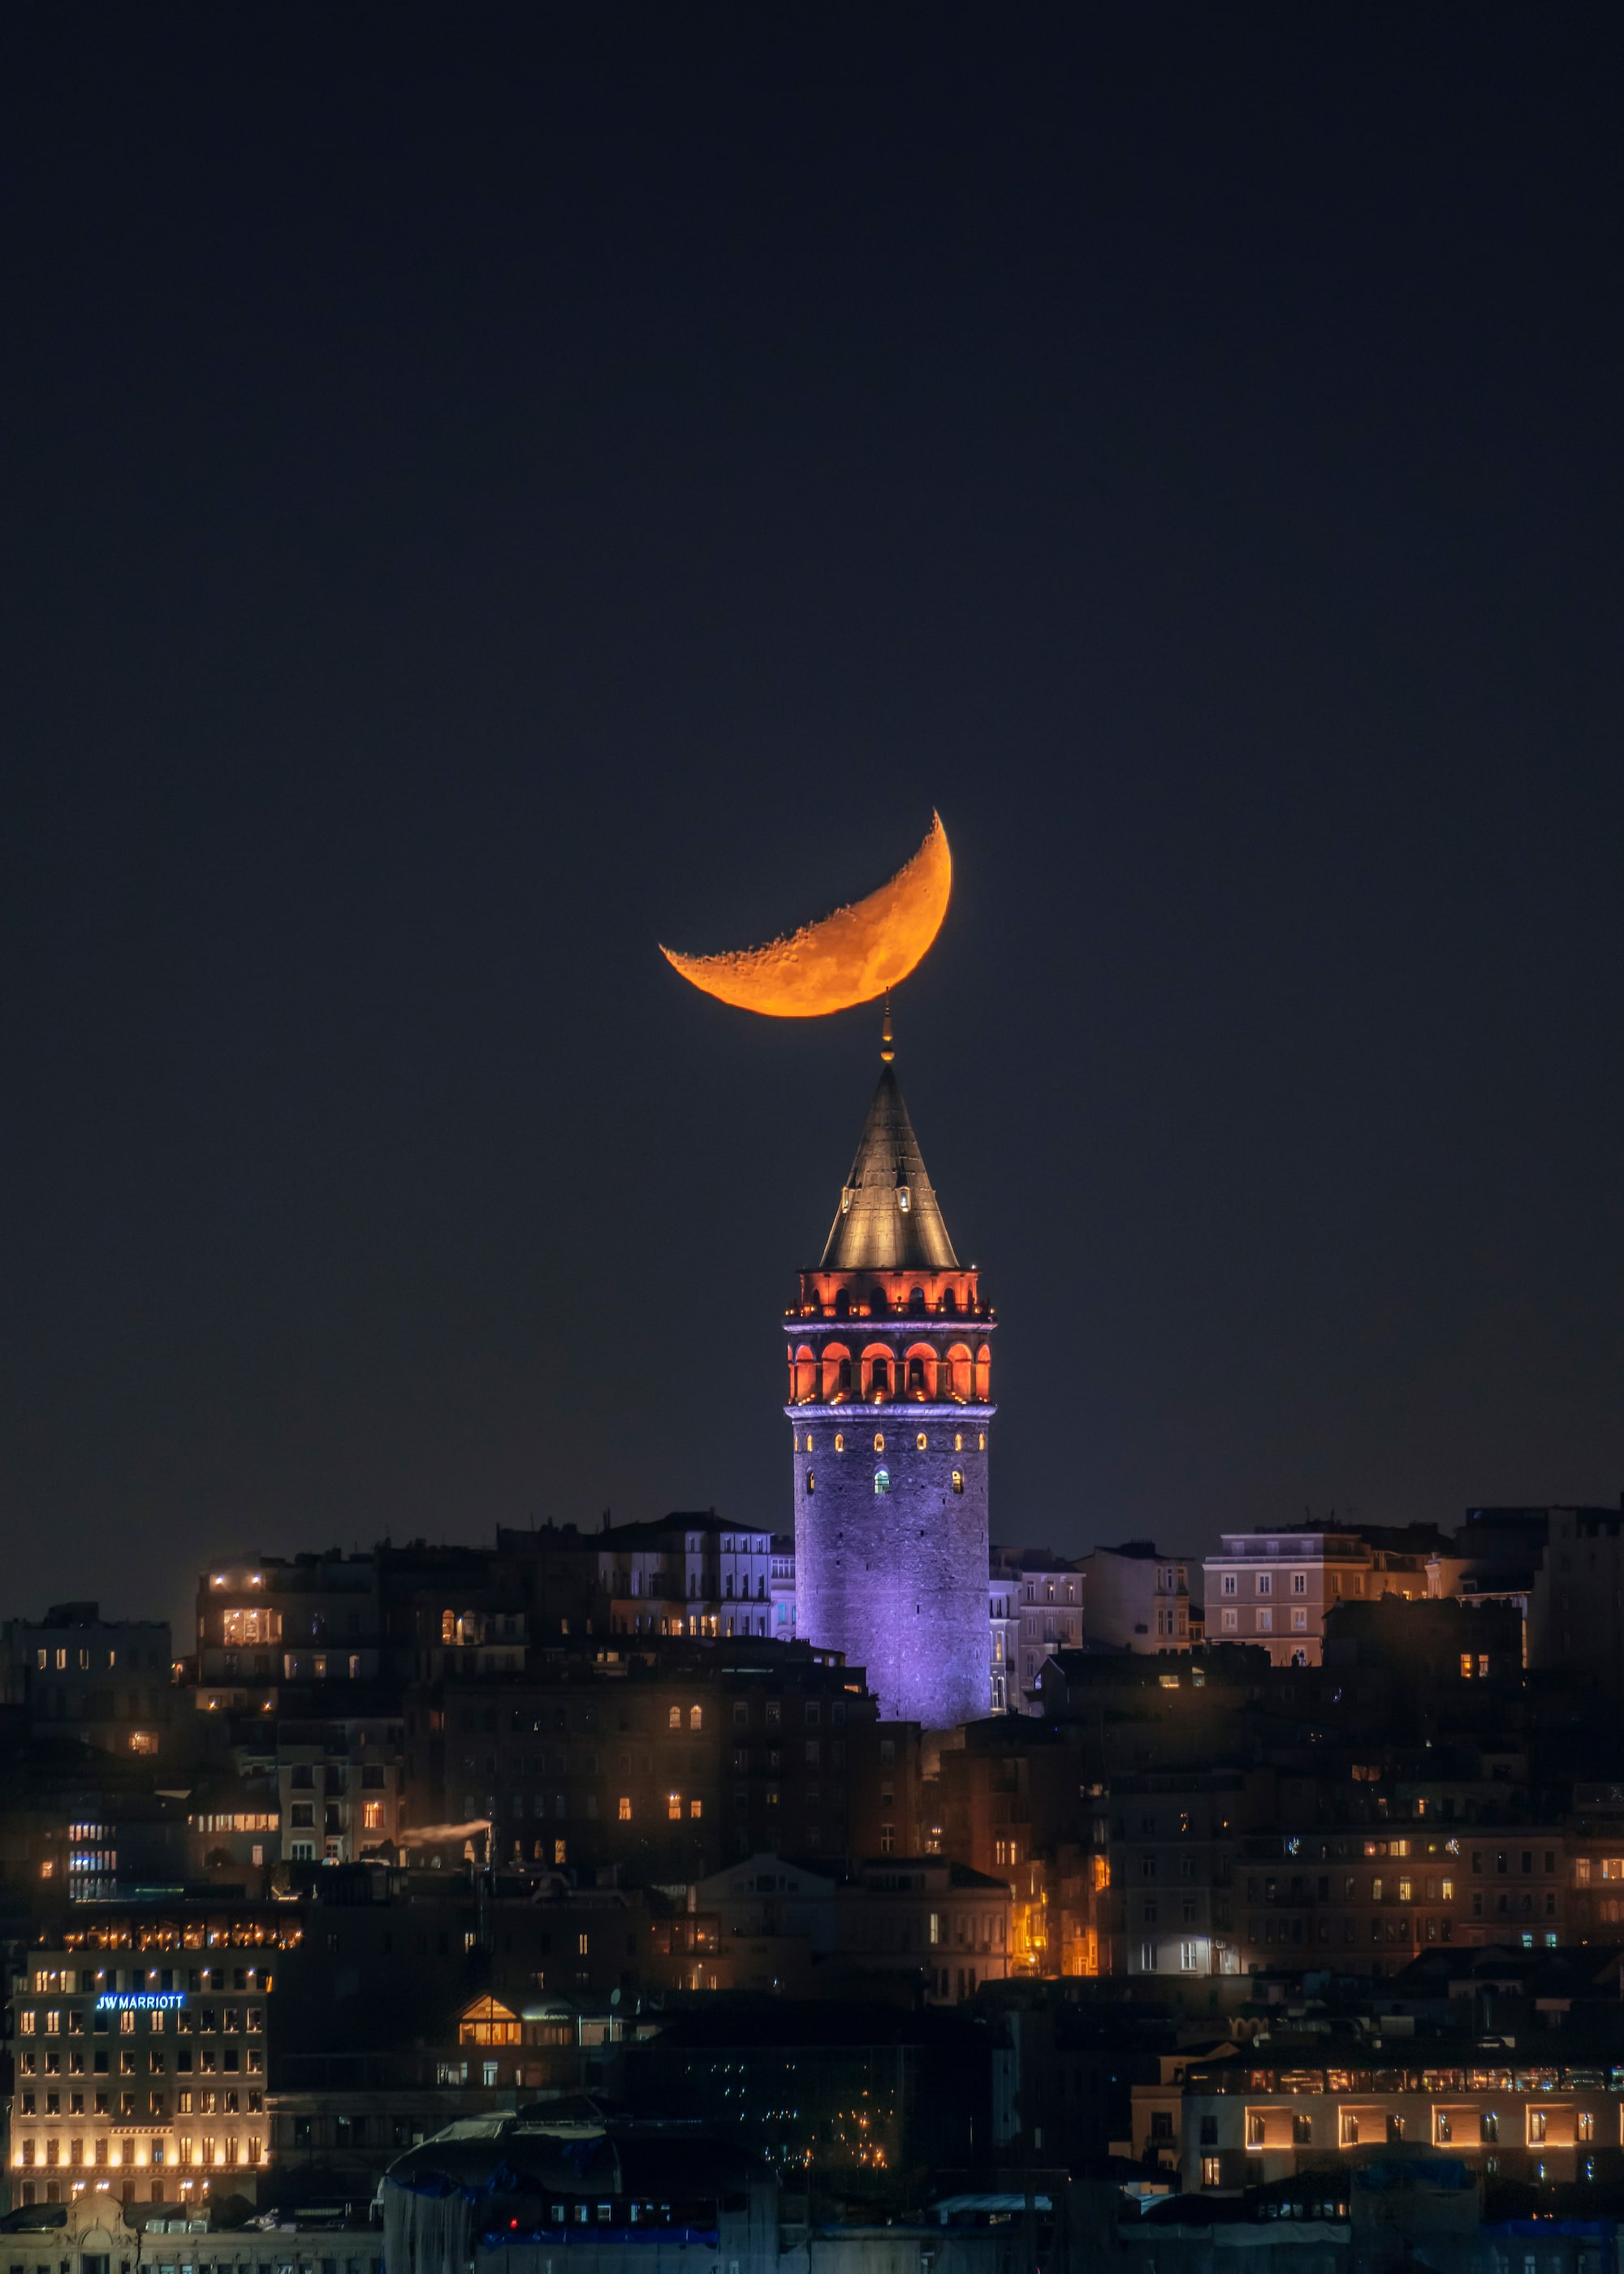 ilhan eroglu sony A6600 a striking crescent moon sitting above a church steeple in istanbul